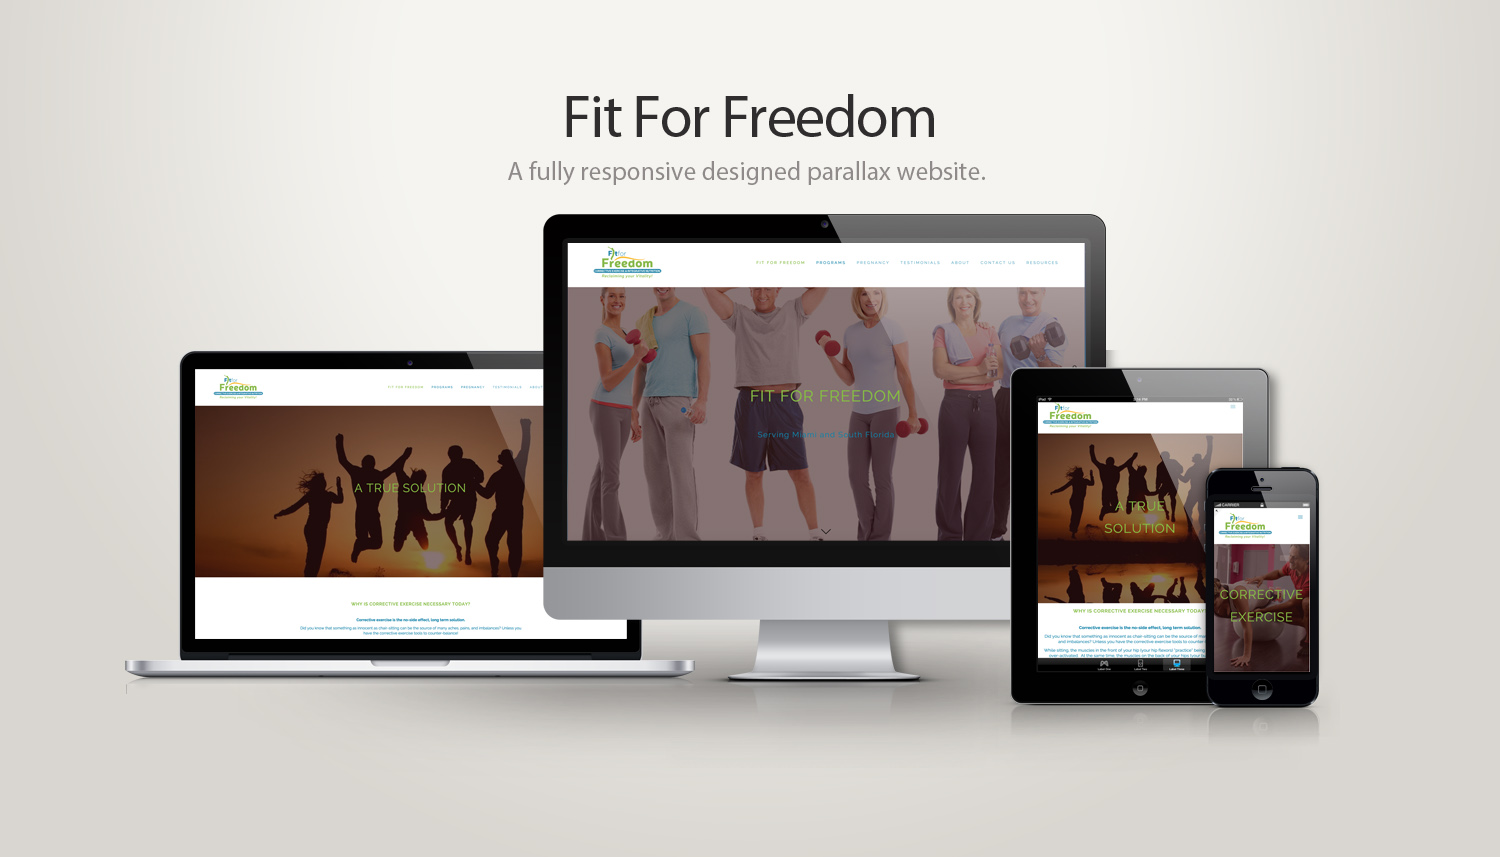 Fit For Freedom - Miami, FL  Fully Responsive Designed Parallax Website